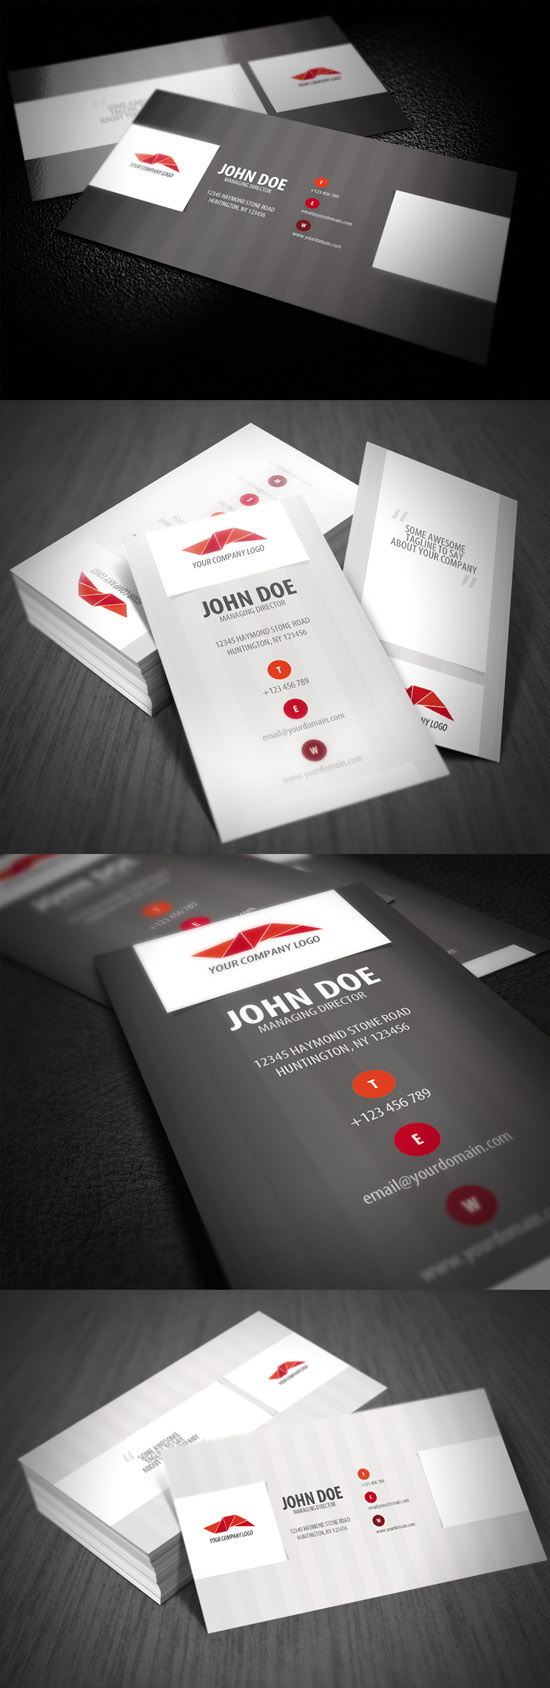 Showcase Of Innovative Business Card Designs